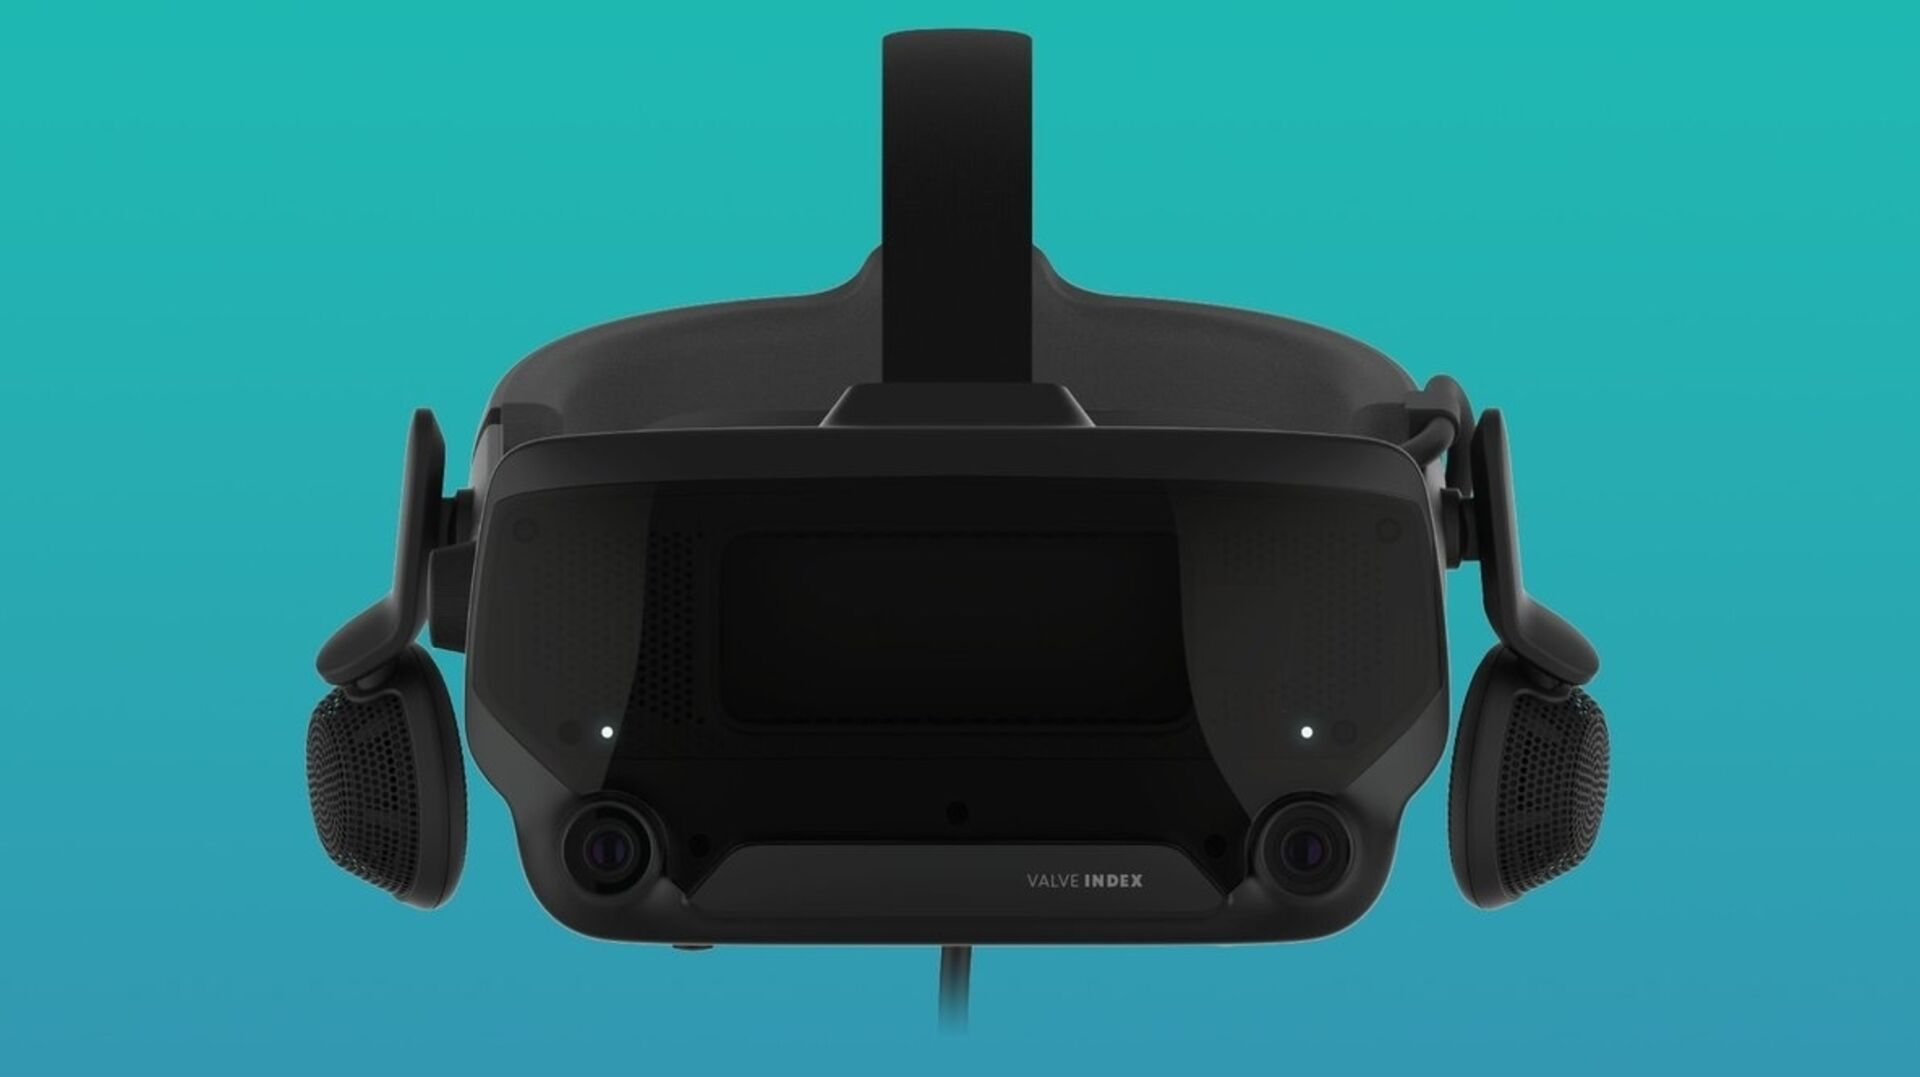 Valve targeting June launch for new Index VR headset, pre-orders